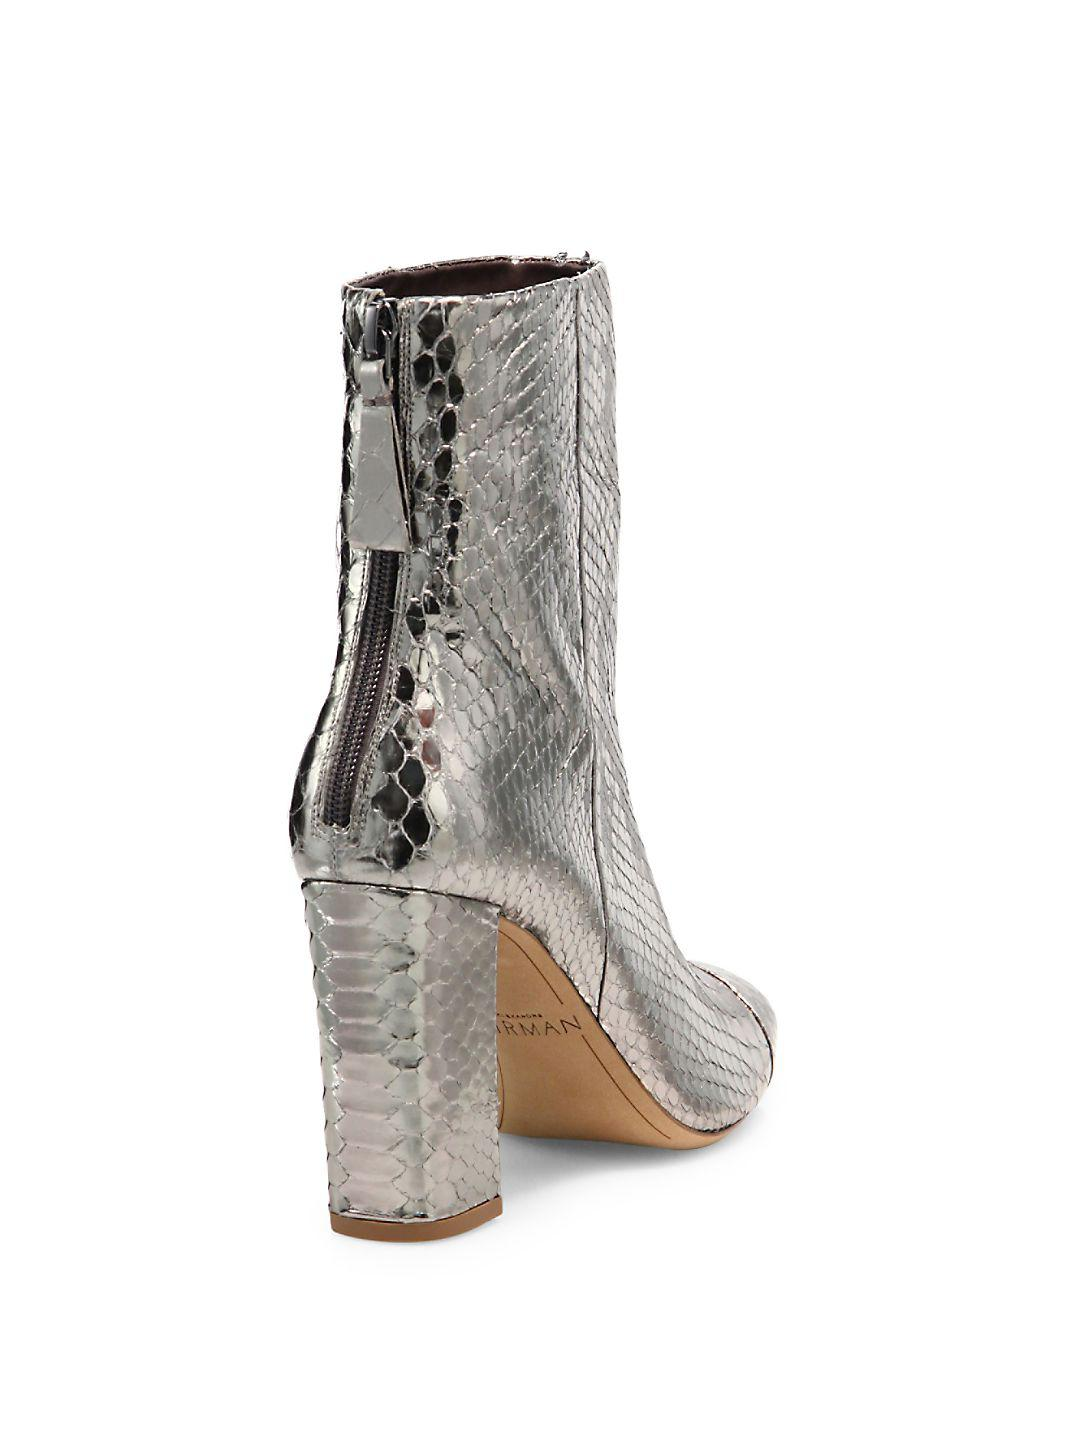 Alexandre Birman Leather Zanny Metallic Python Block-heel Booties